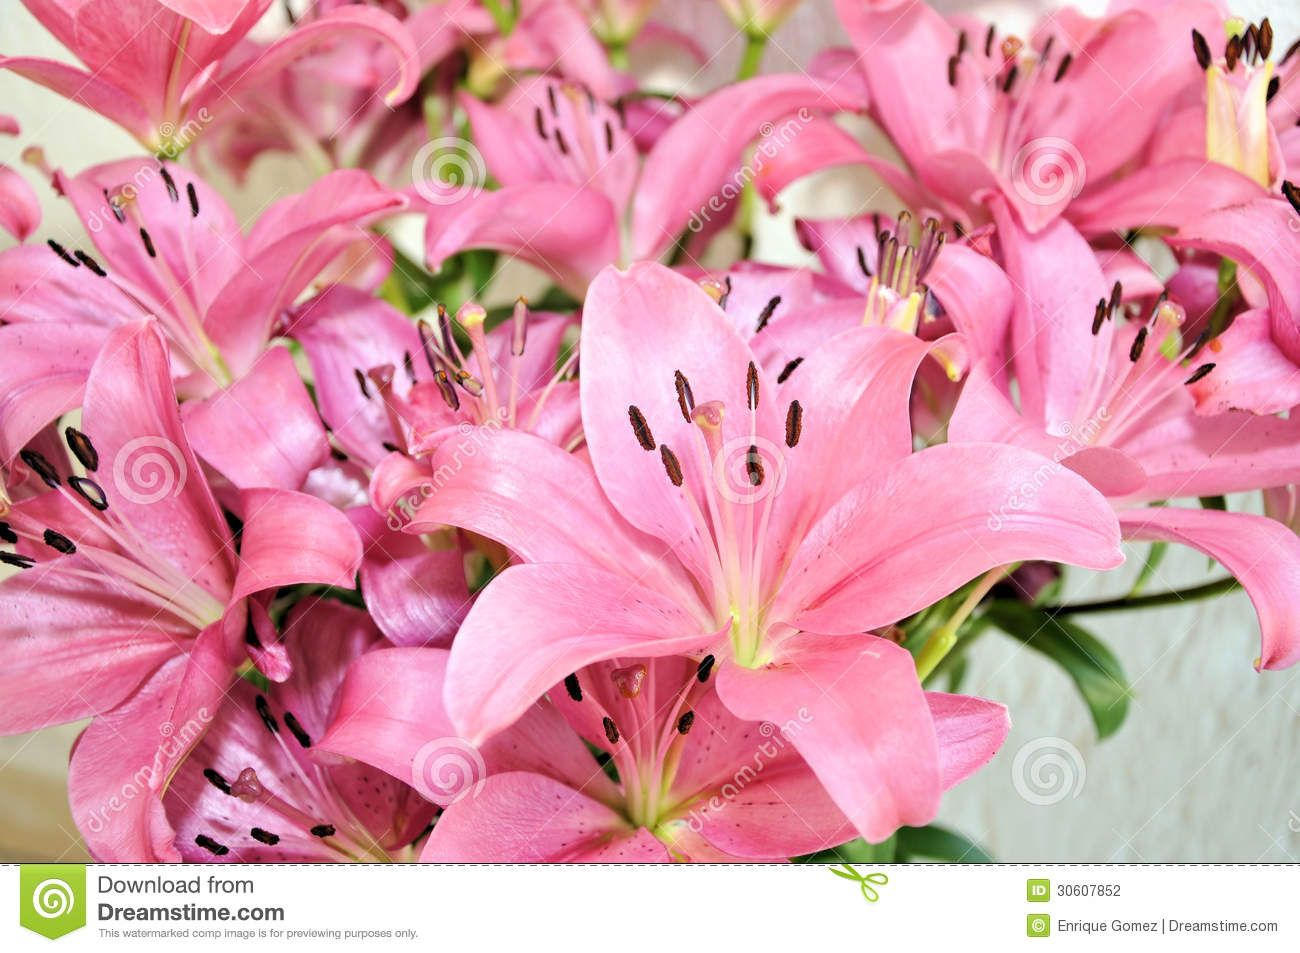 Lily Flowers Download From Over 36 Million High Quality Stock